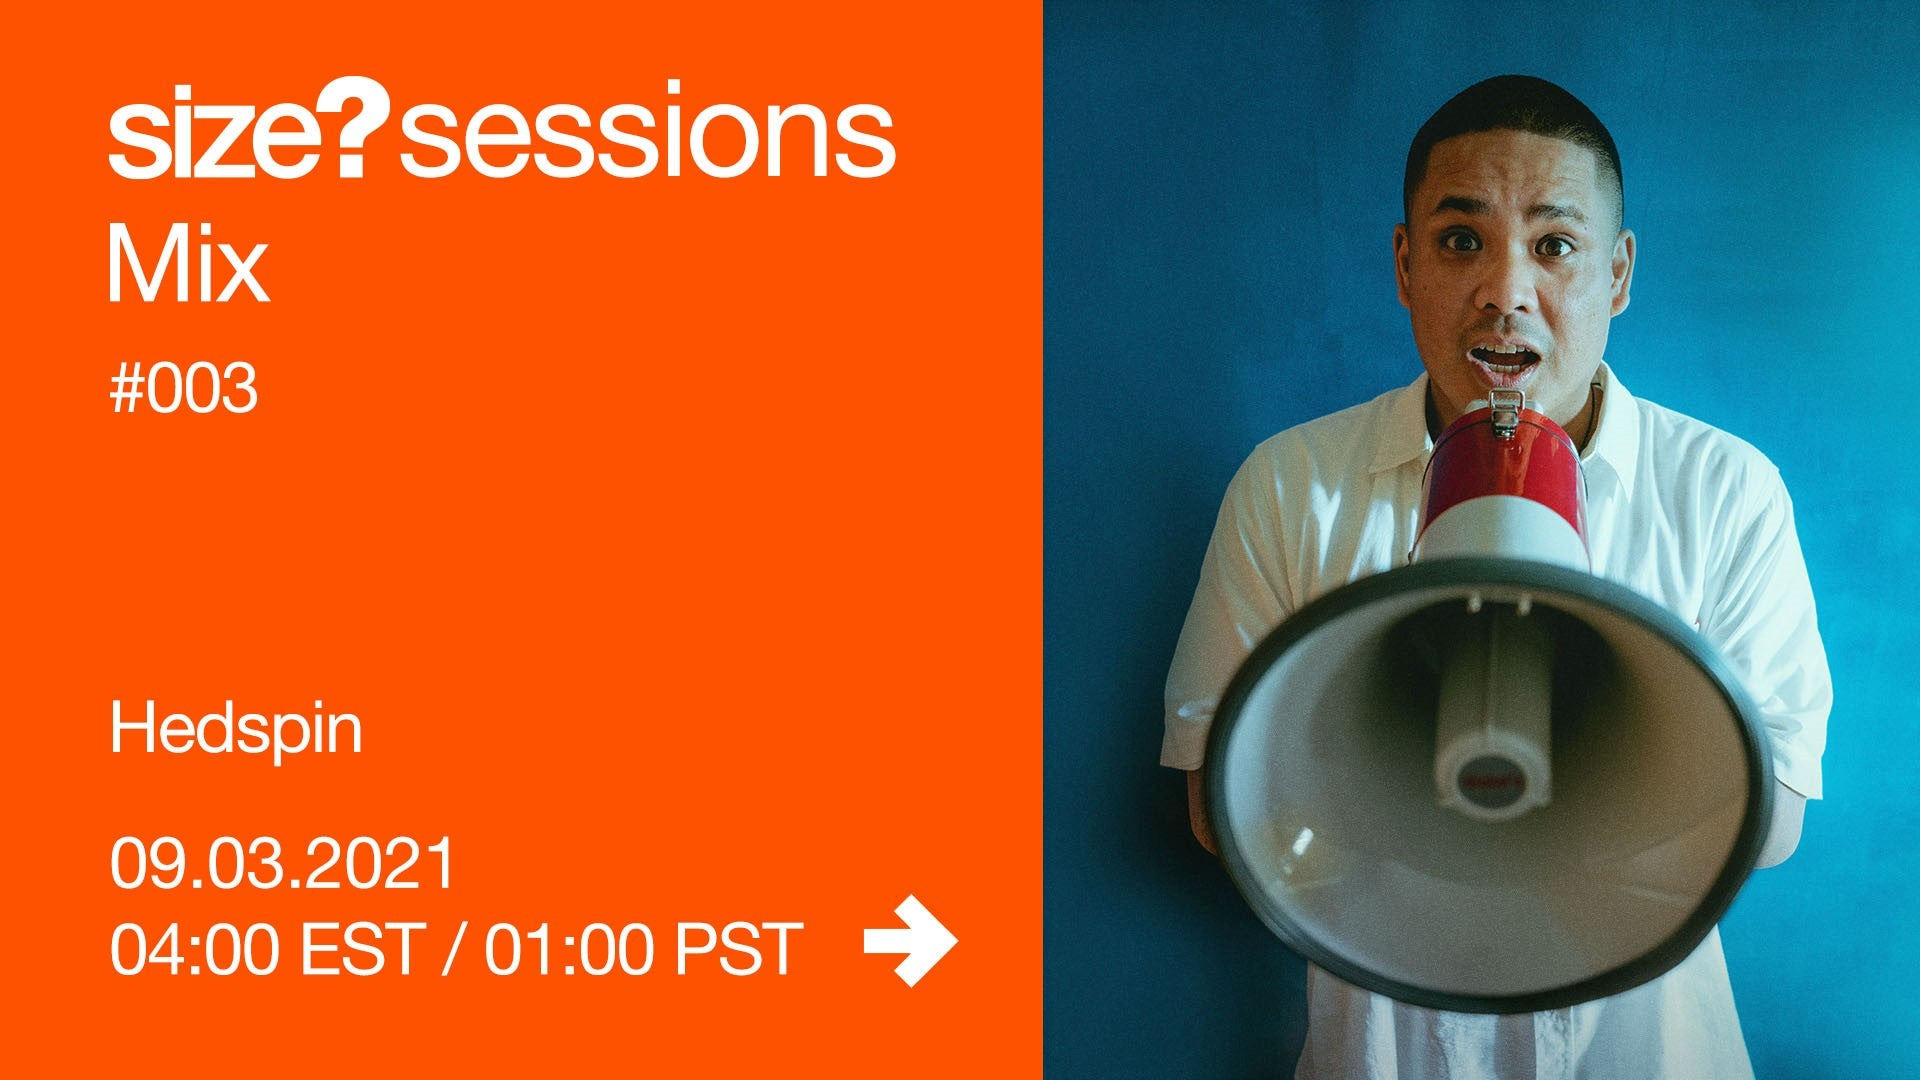 size?sessions mix #003